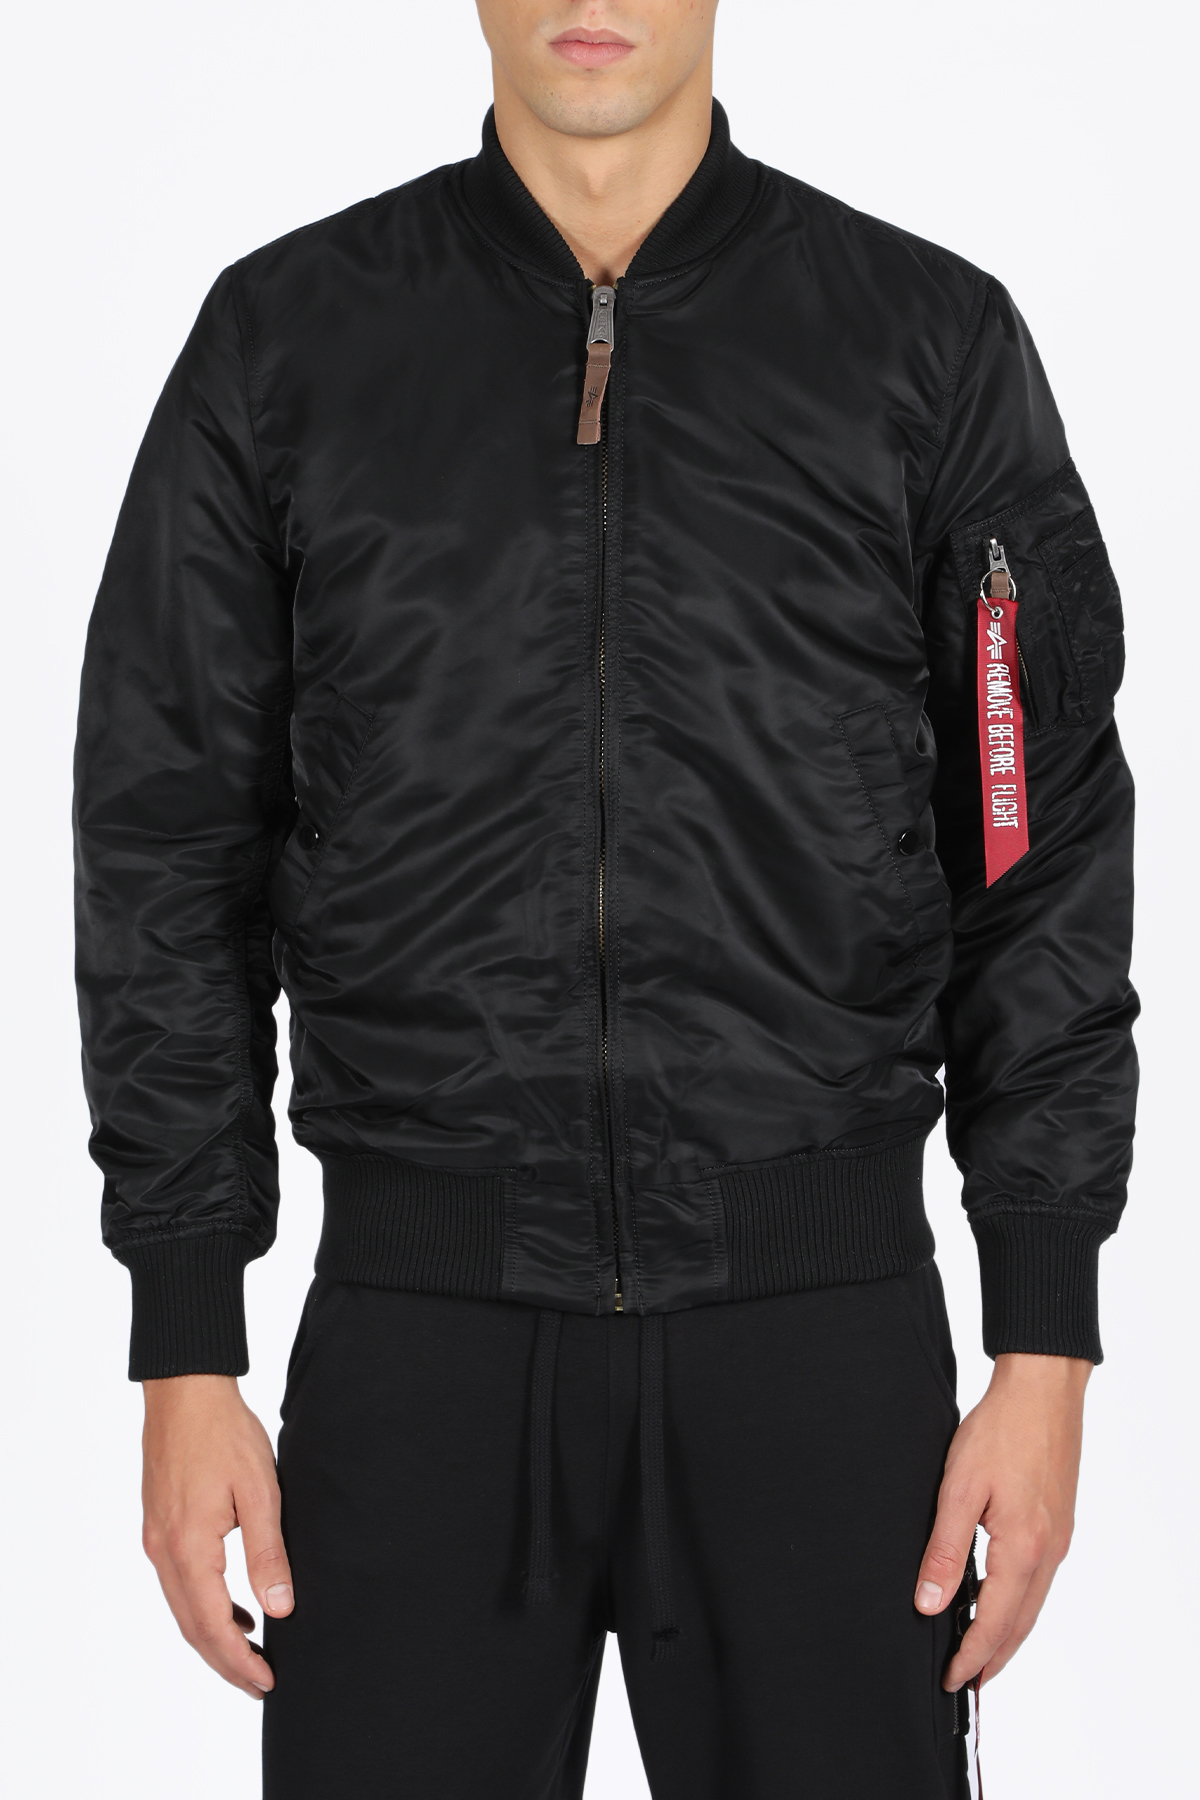 online retailer be640 5f8b9 - ALPHA INDUSTRIES - Strikestore